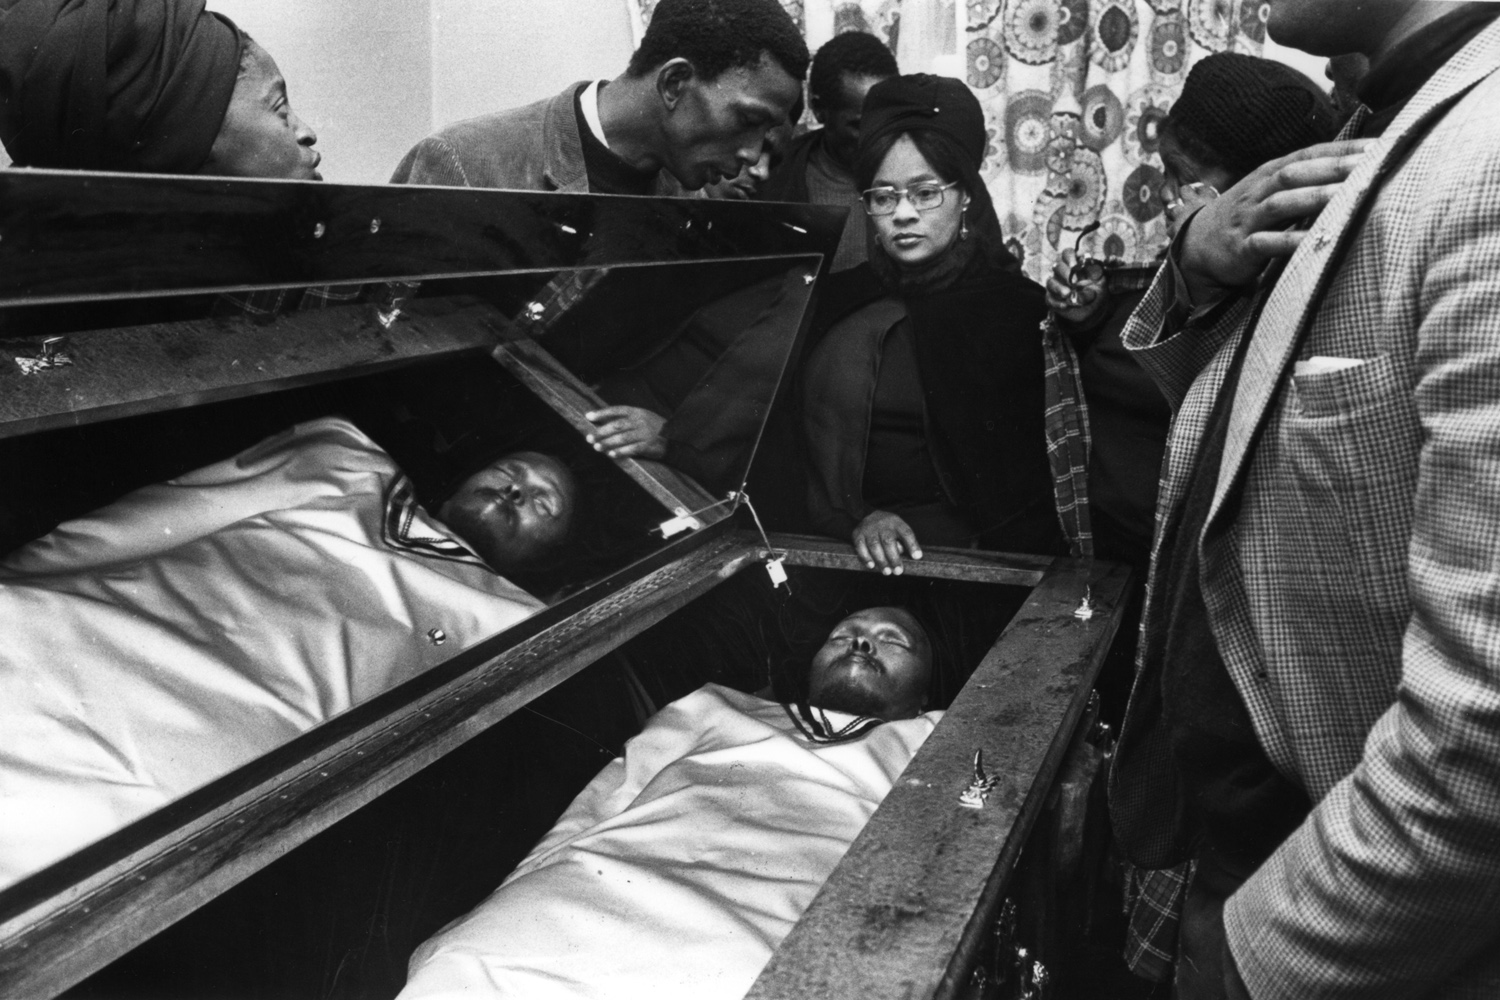 Mourners gather to pay their last respects as Steve Biko's body lies in state in his home before the funeral, attended by 20,000 mourners at King William's Town. 1977.